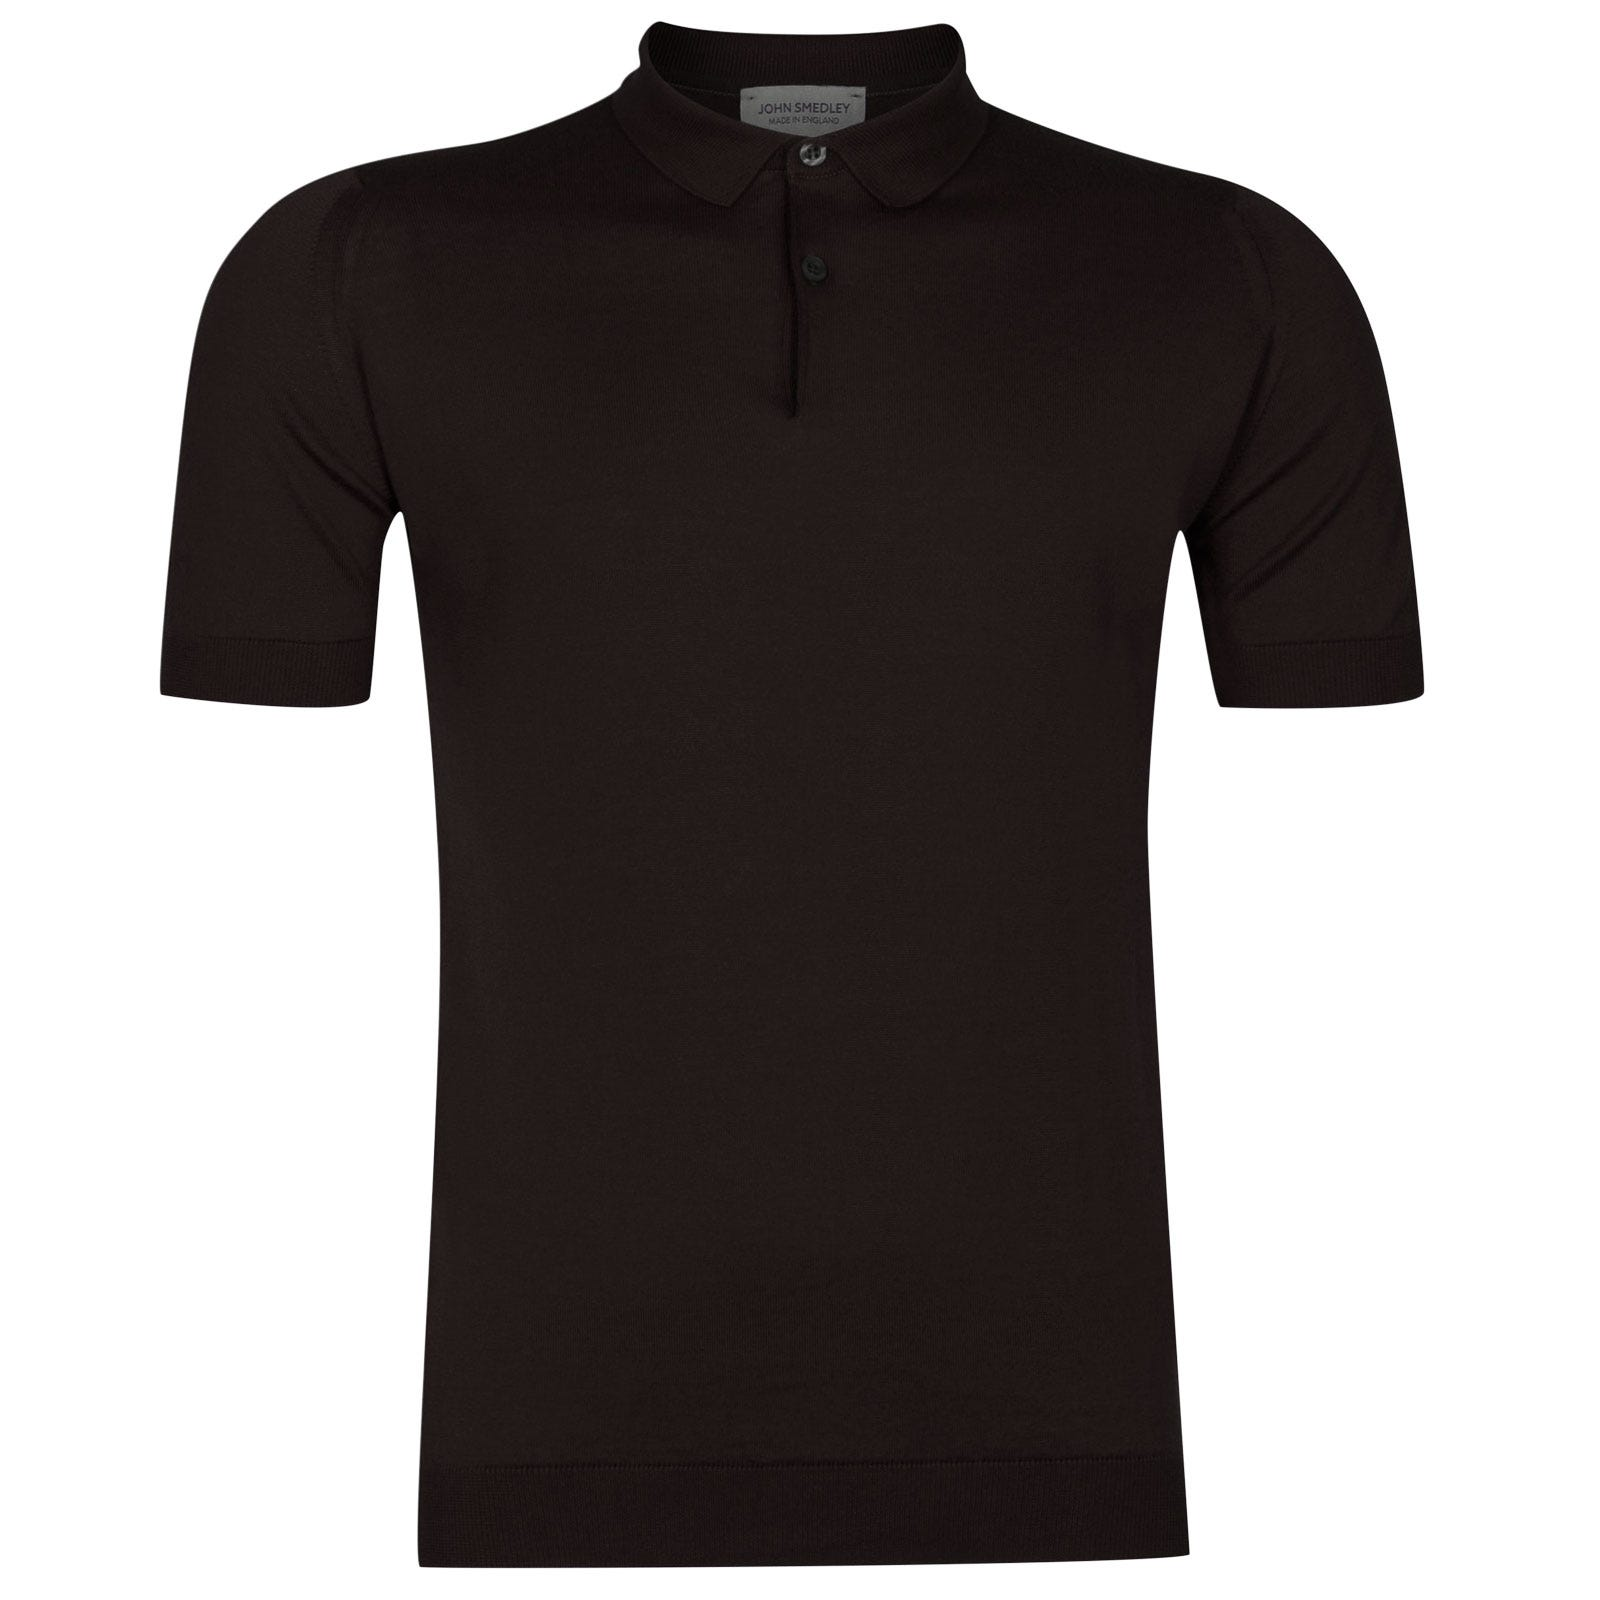 John Smedley Rhodes in Dark Leather Shirt-XLG